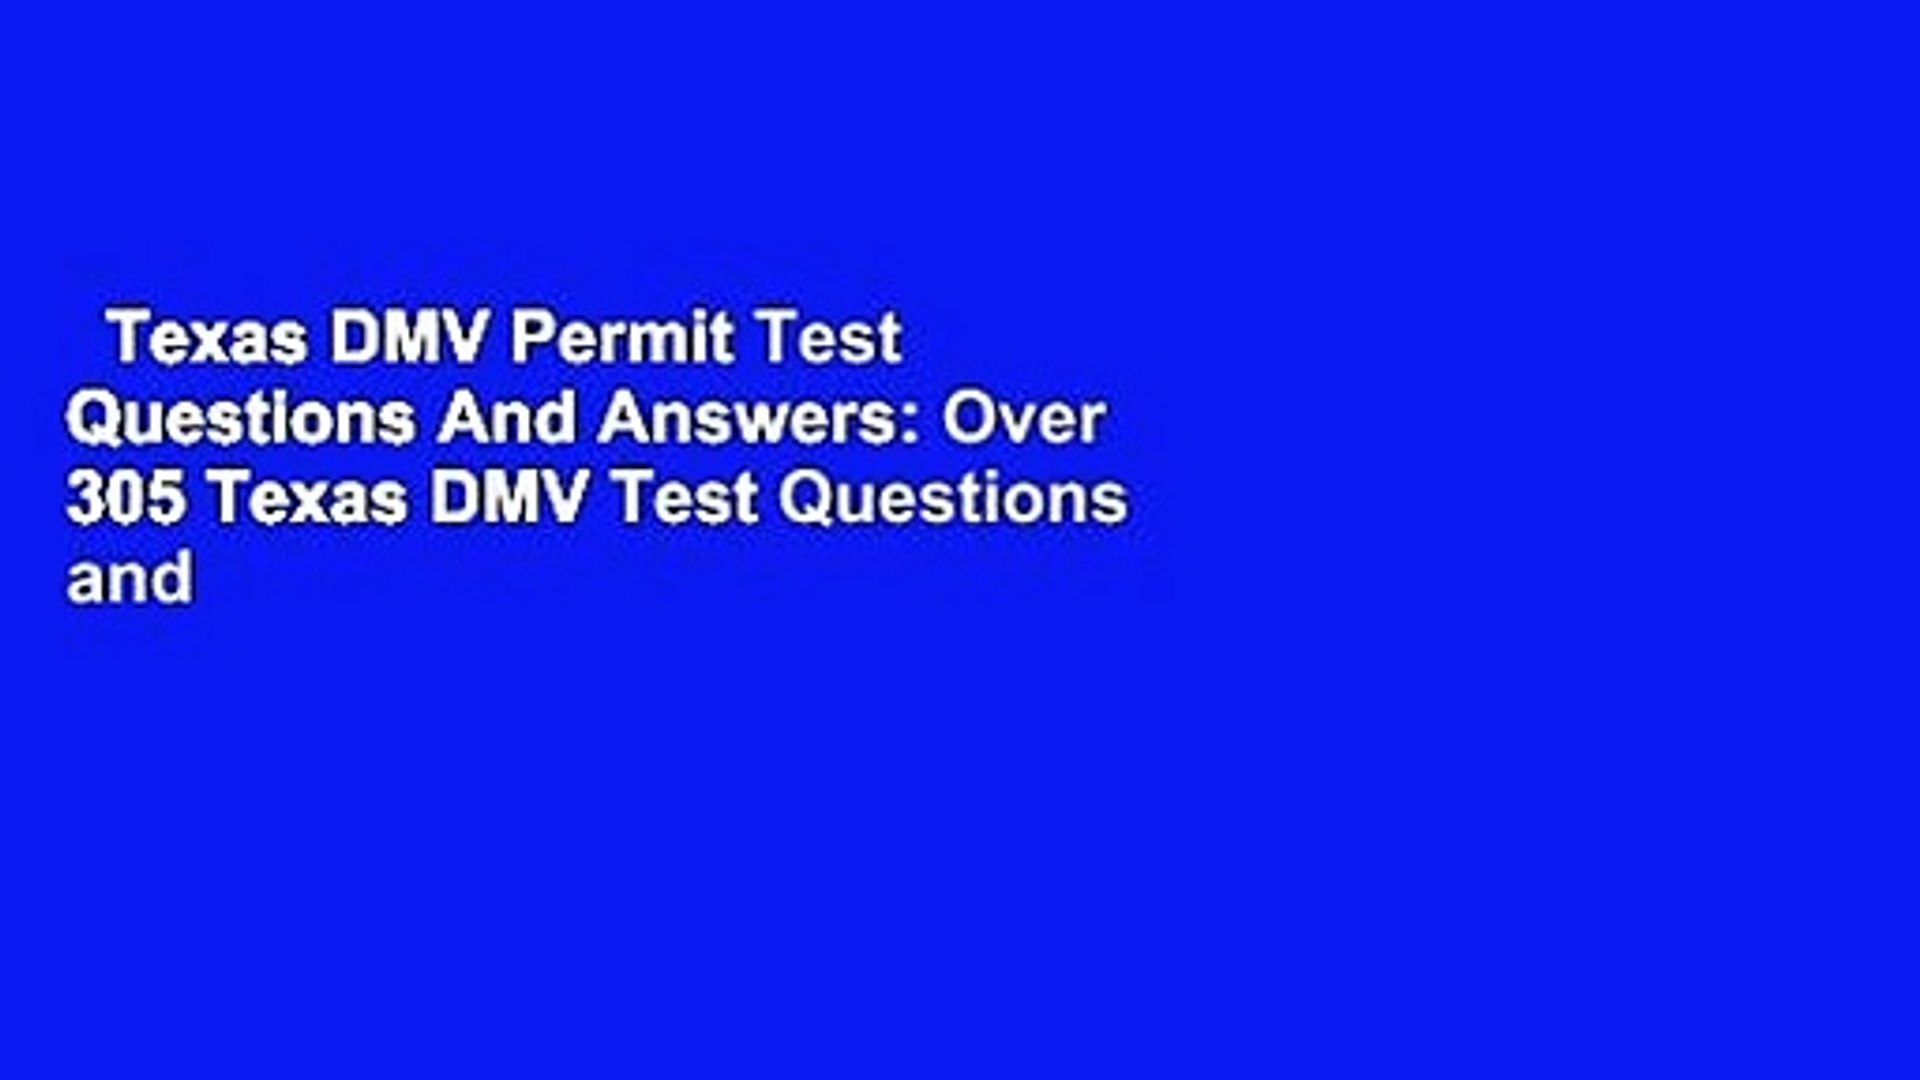 Texas DMV Permit Test Questions And Answers: Over 305 Texas DMV Test  Questions and Explanatory